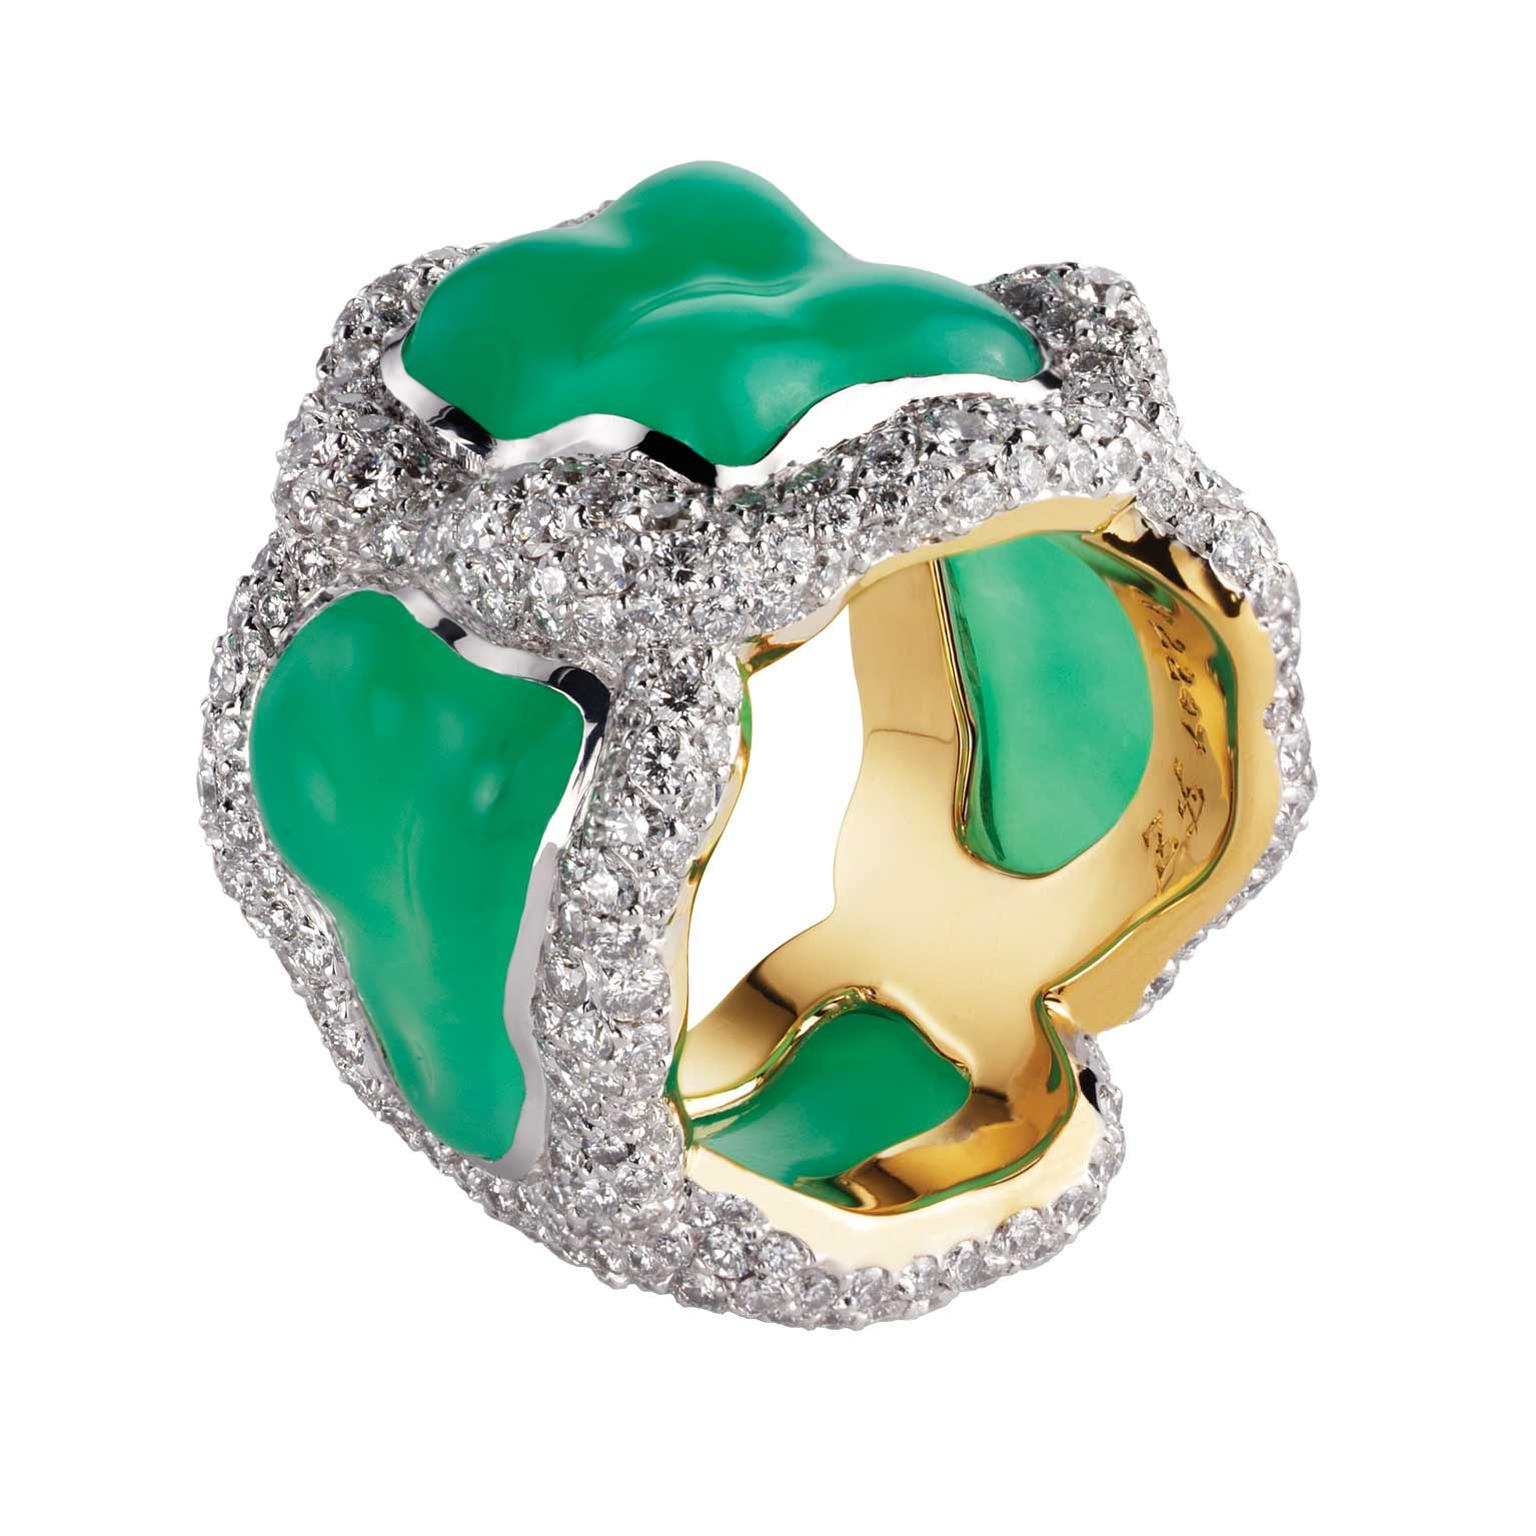 Fabergé Katya chrysoprase ring in white and yellow gold with diamonds